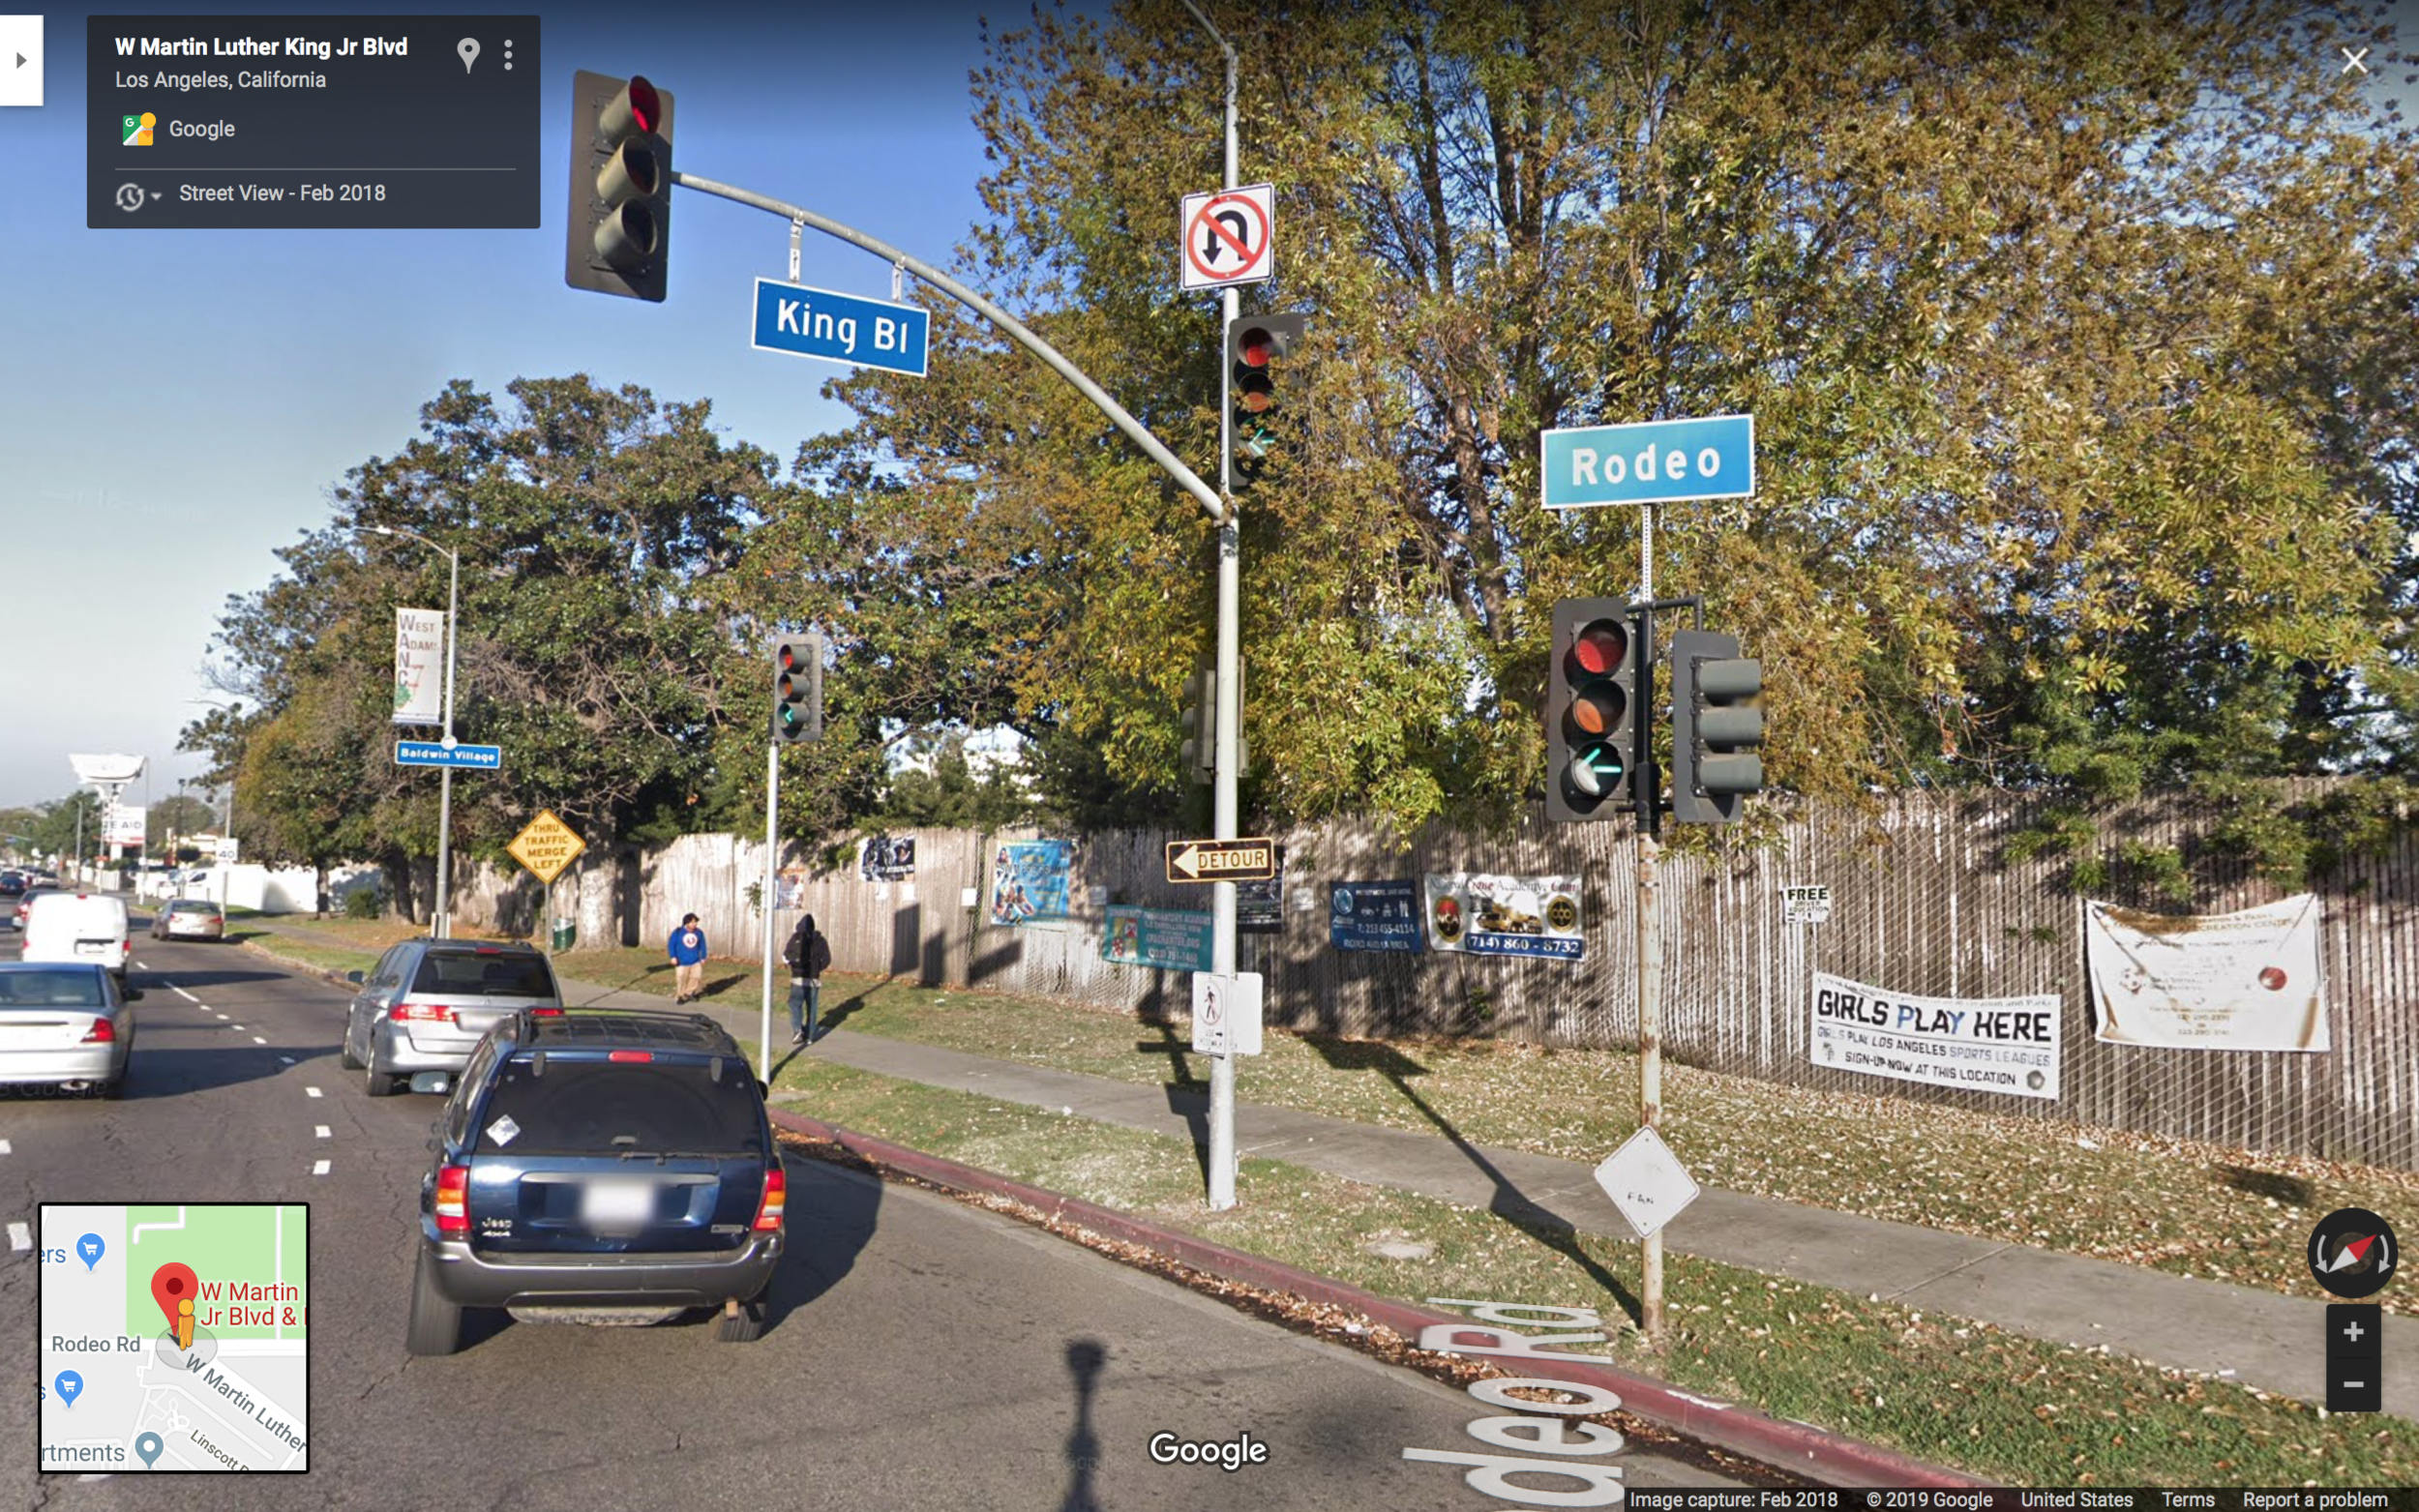 ( Google Street View ) Martin Luther King Jr. Blvd. and Rodeo Rd.